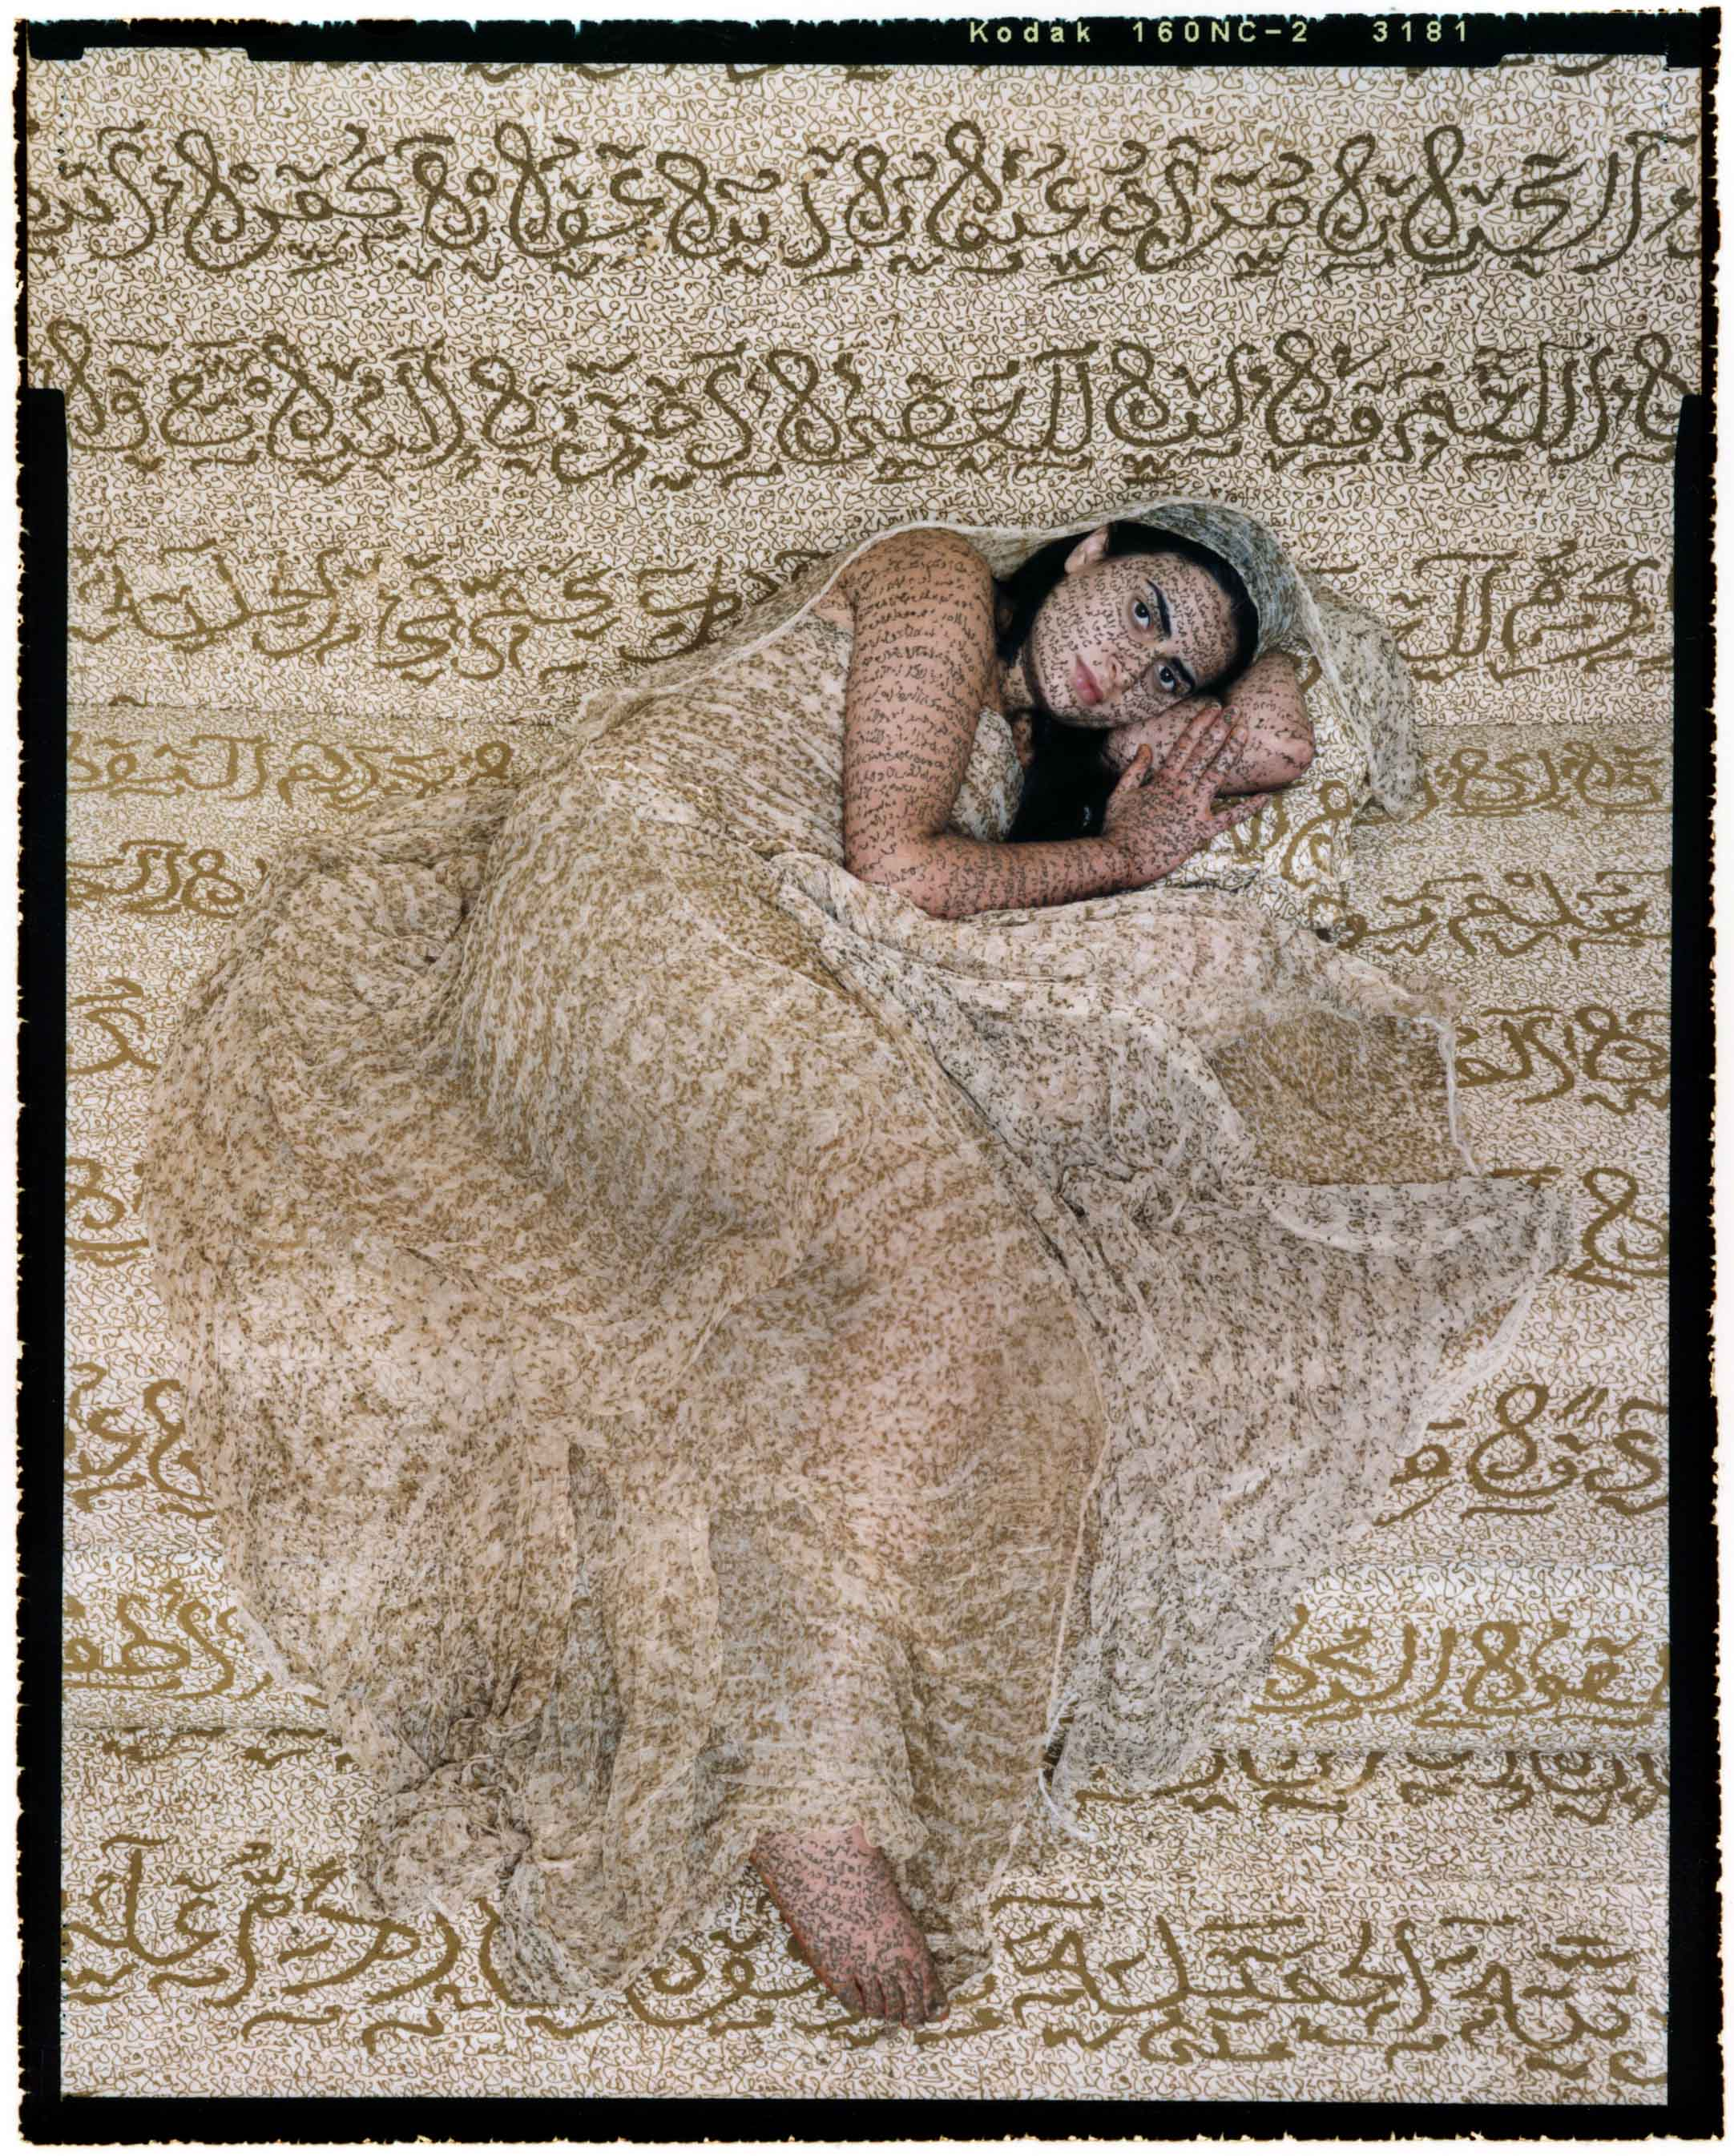 "Les Femmes du Maroc Revisited #7, 2010 Chromogenic print mounted to aluminum with a UV protective laminate, 60 x 48"" © Lalla Essaydi/Courtesy Jenkins Johnson Gallery, San Francisco and Edwynn Houk Gallery, New York"